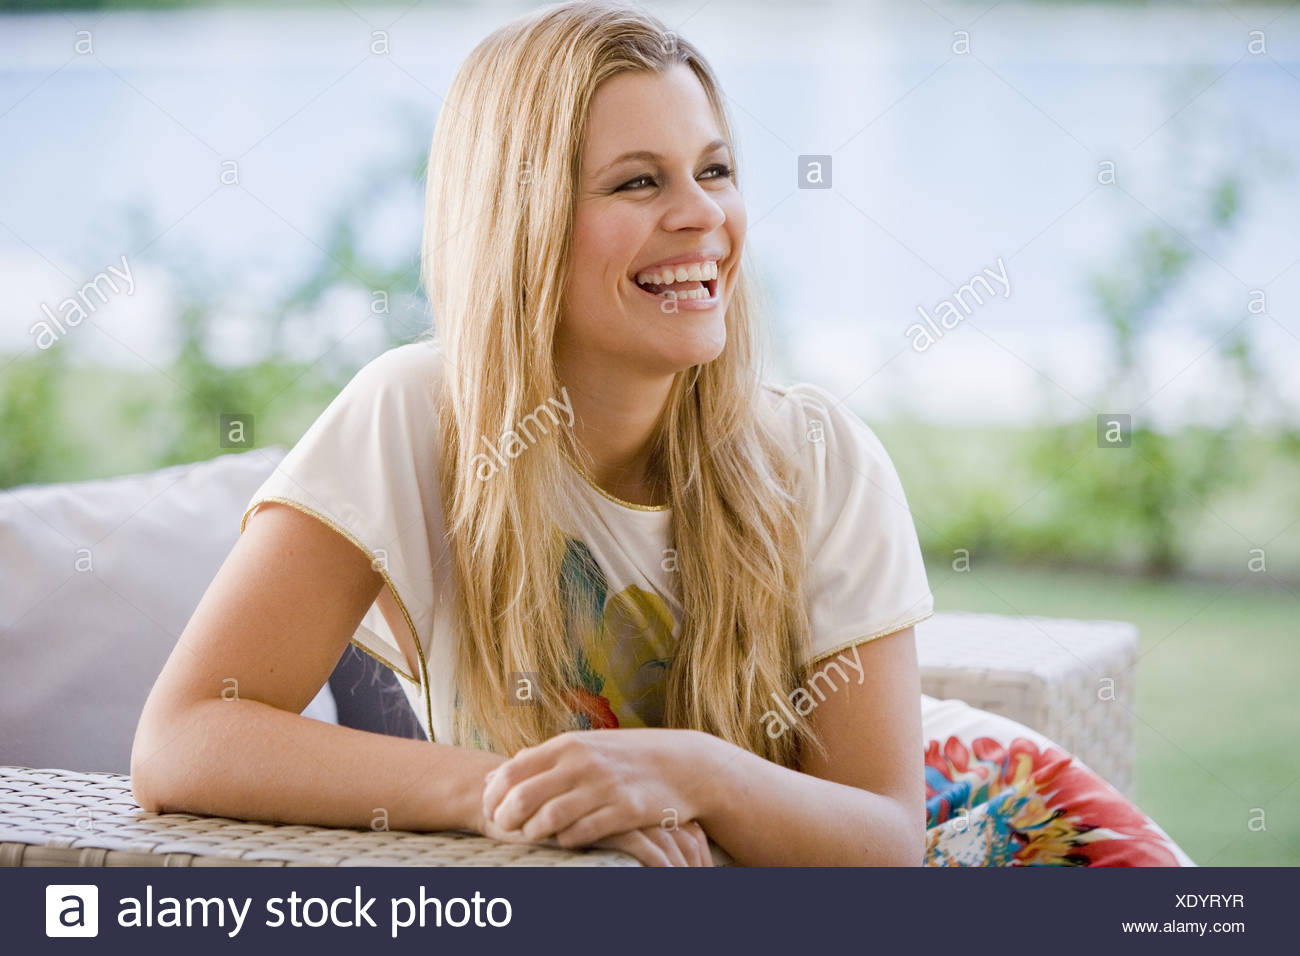 Young beautiful woman smiling - Stock Image